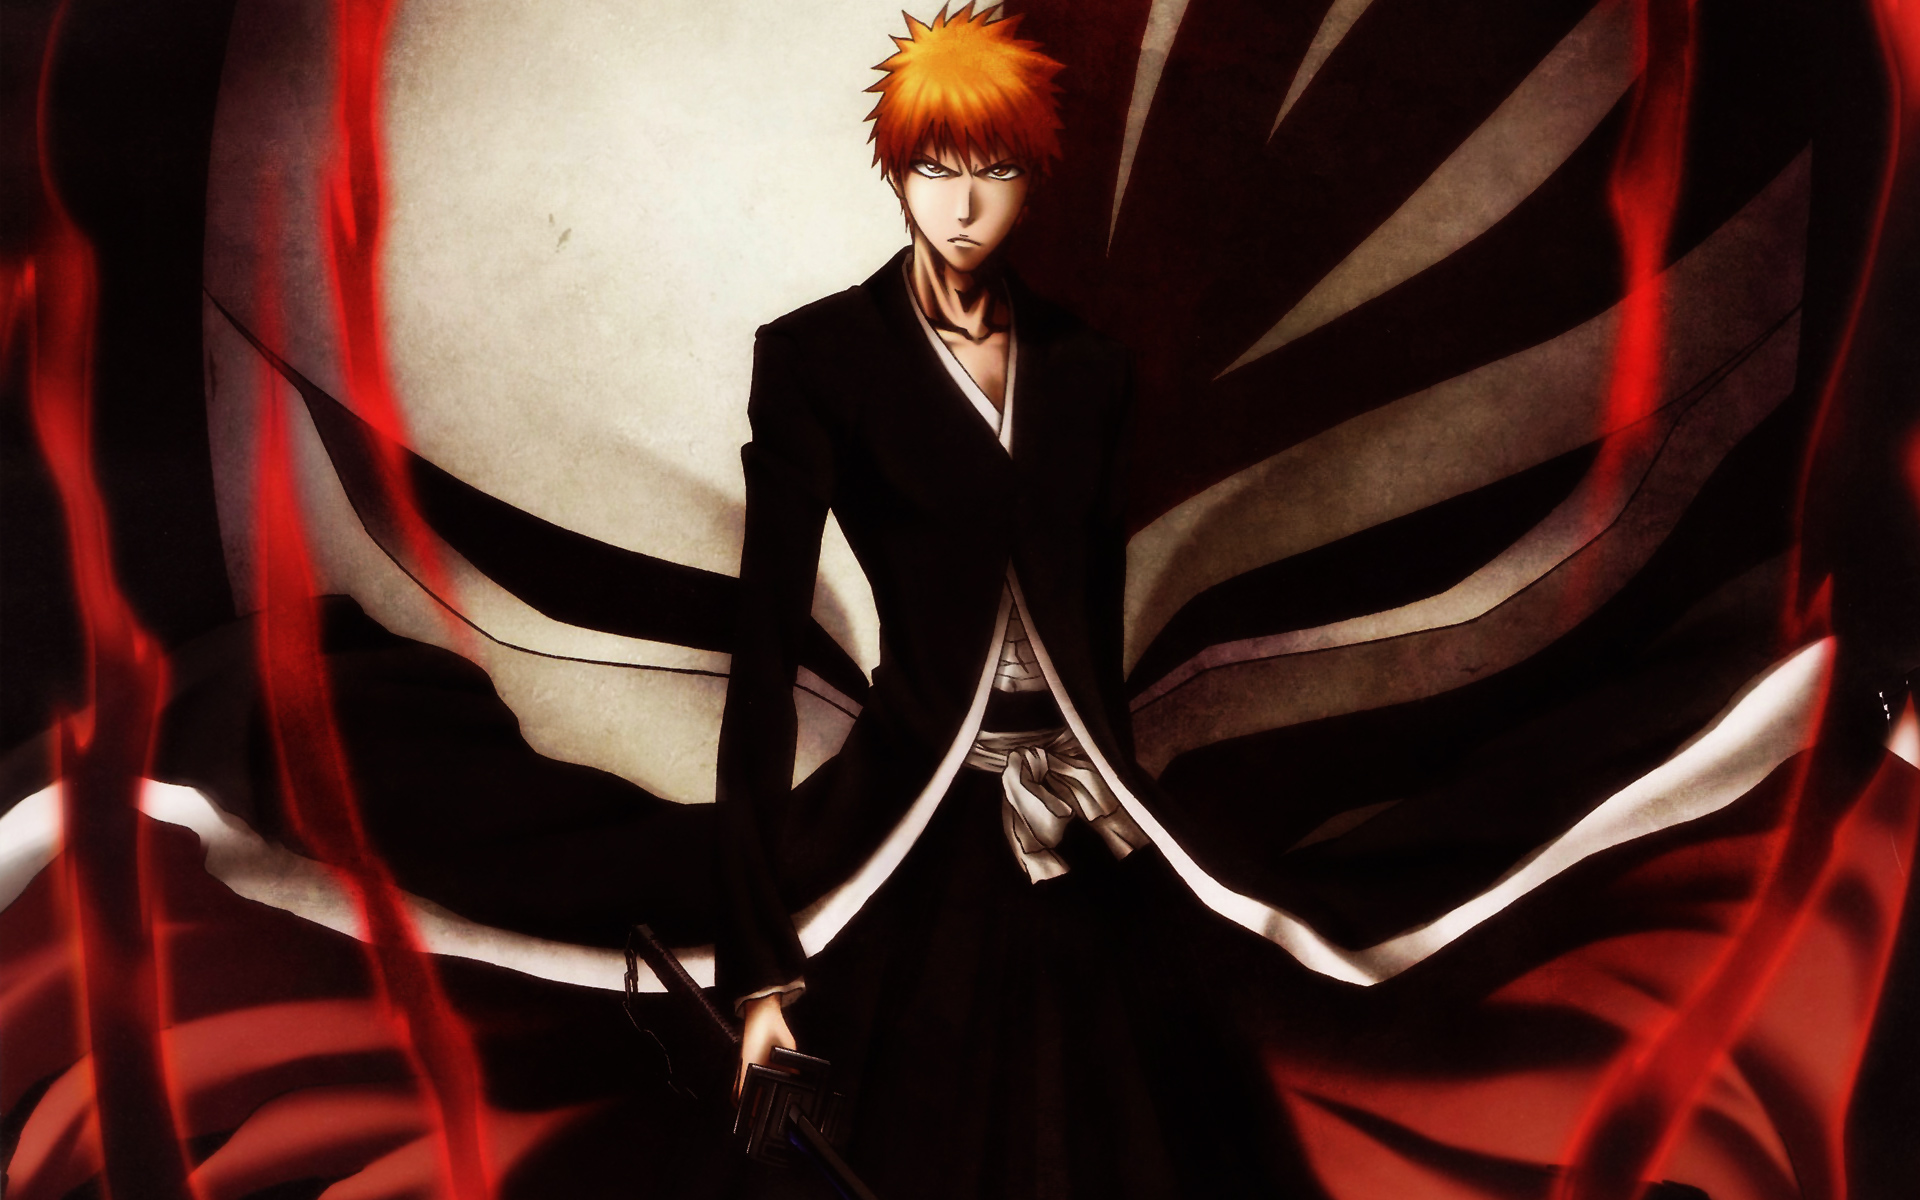 Bleach Anime Wallpapers Kurosaki Ichigo Wallpapers 1206719741734 1920x1200